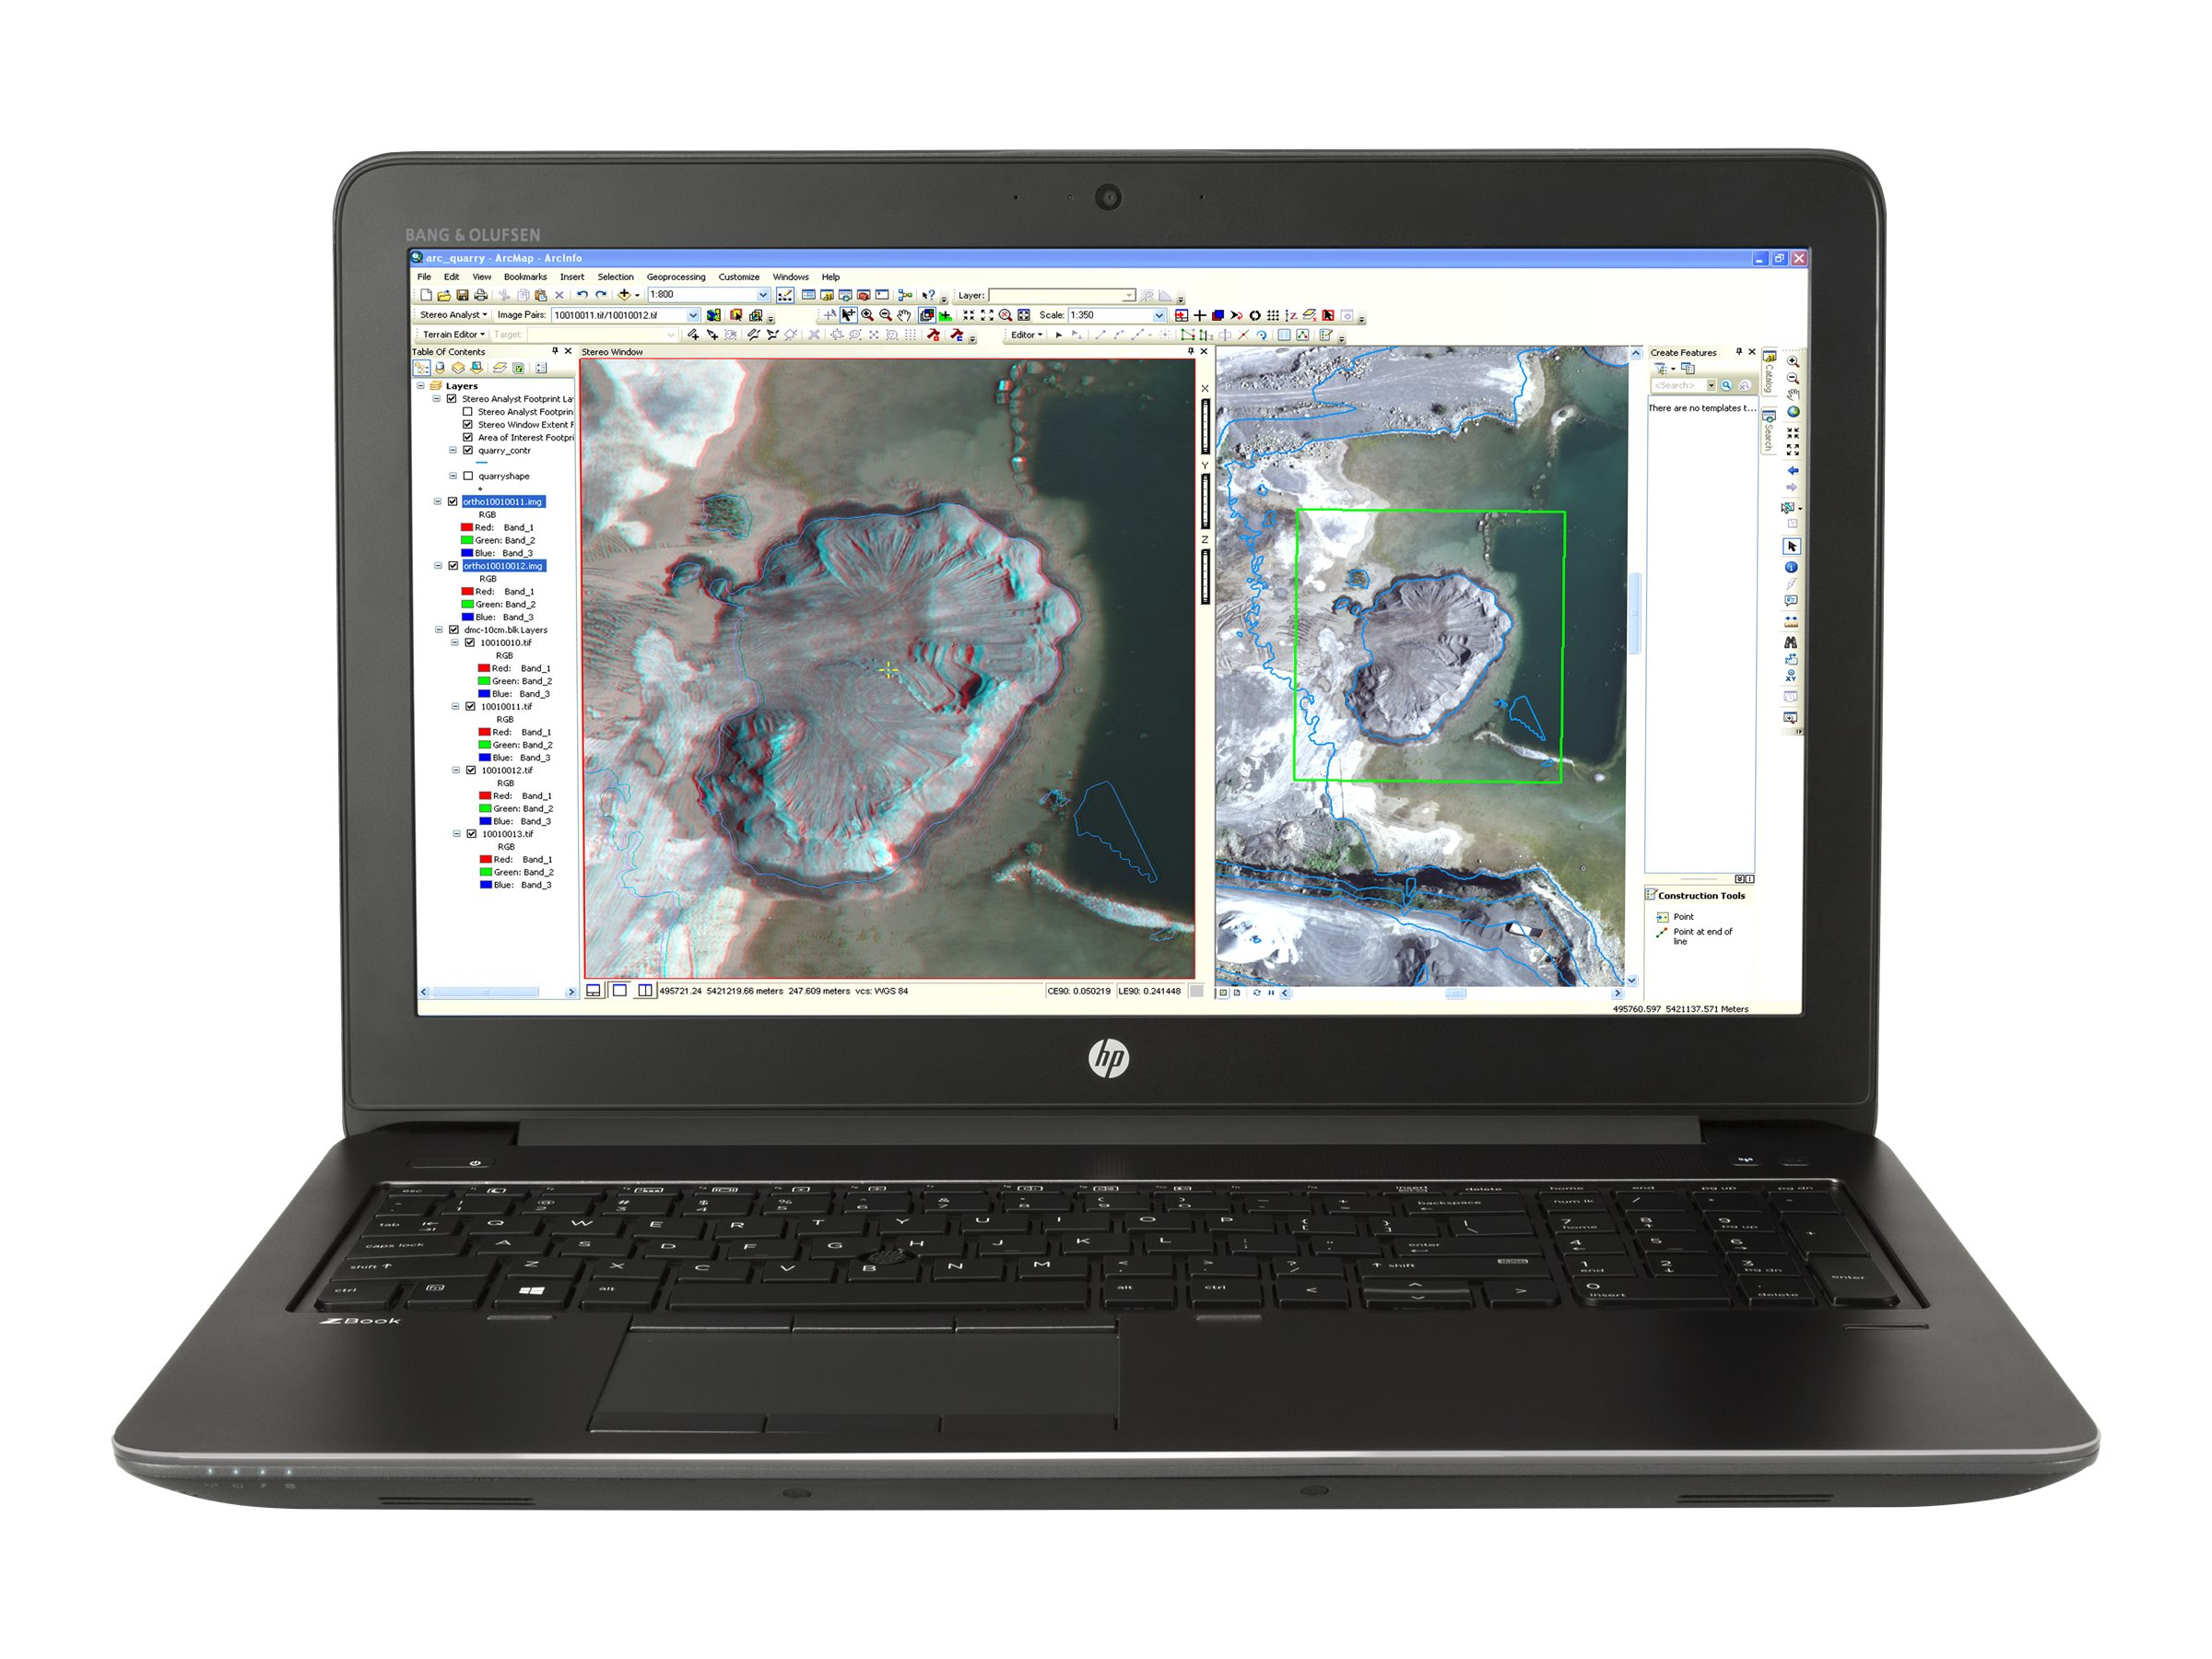 HP ZBook 15 G3 Core i7-6700HQ 2.6GHz 8GB 256GB ac BT FR WC 9C W5170M 15.6 FHD W7P64-W10P